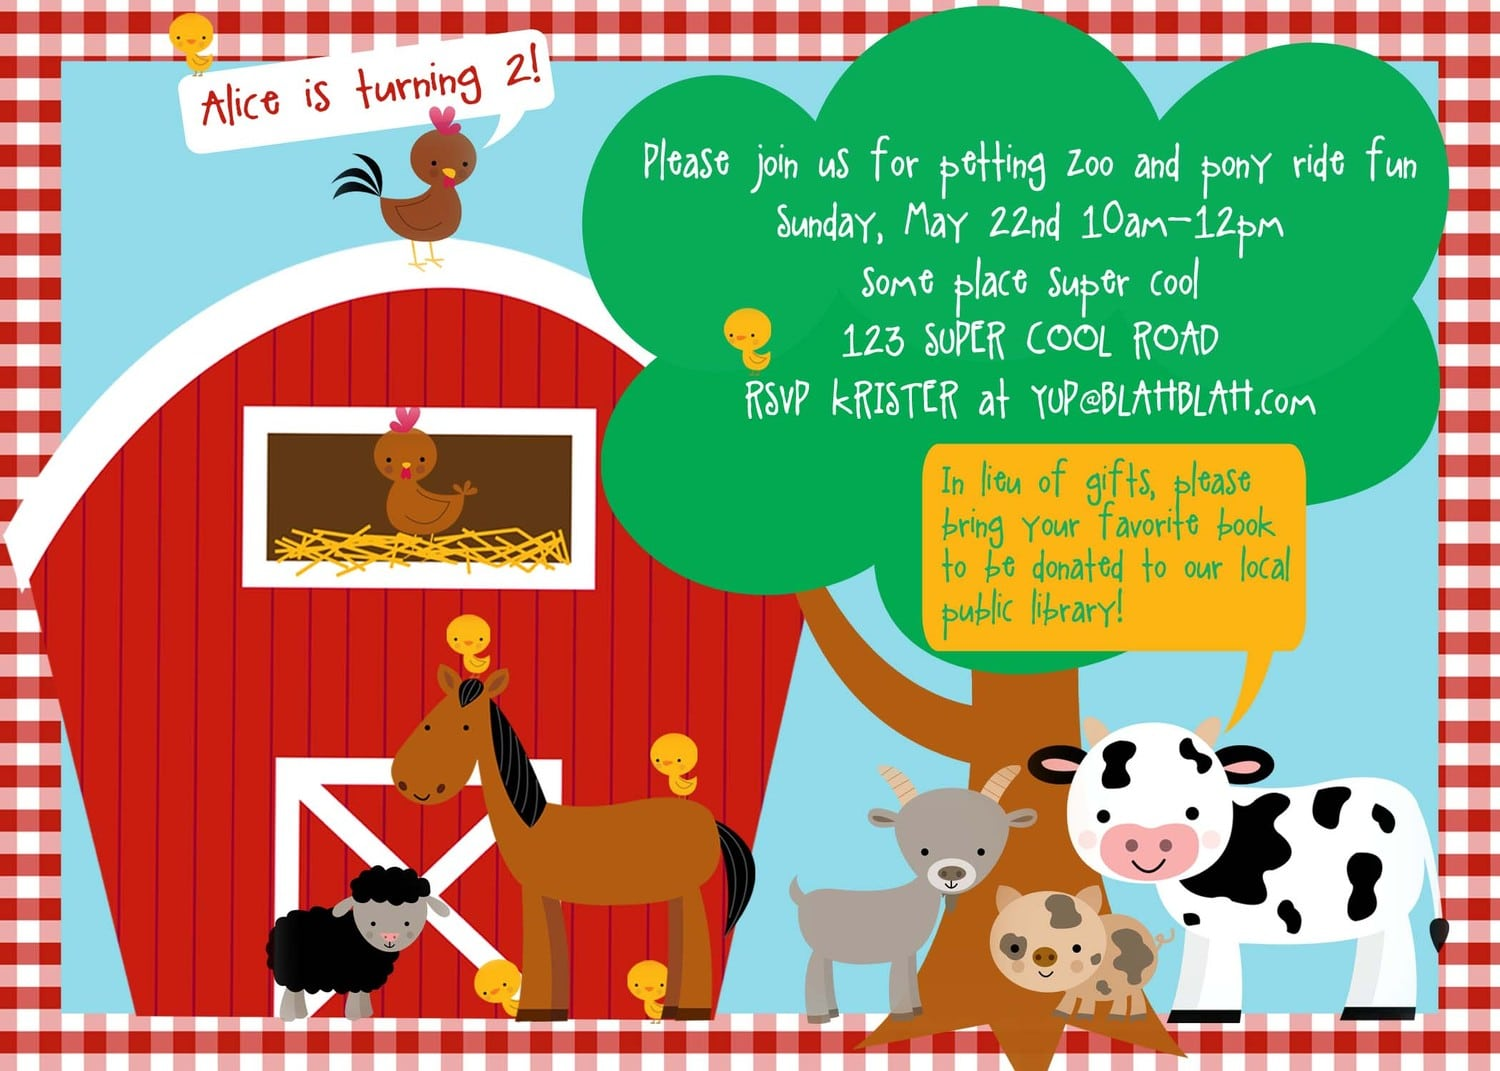 Farm theme party invitations mickey mouse invitations templates party invitations petting zoo farm birthday invitation diy by wickedcraftydesigns stopboris Images